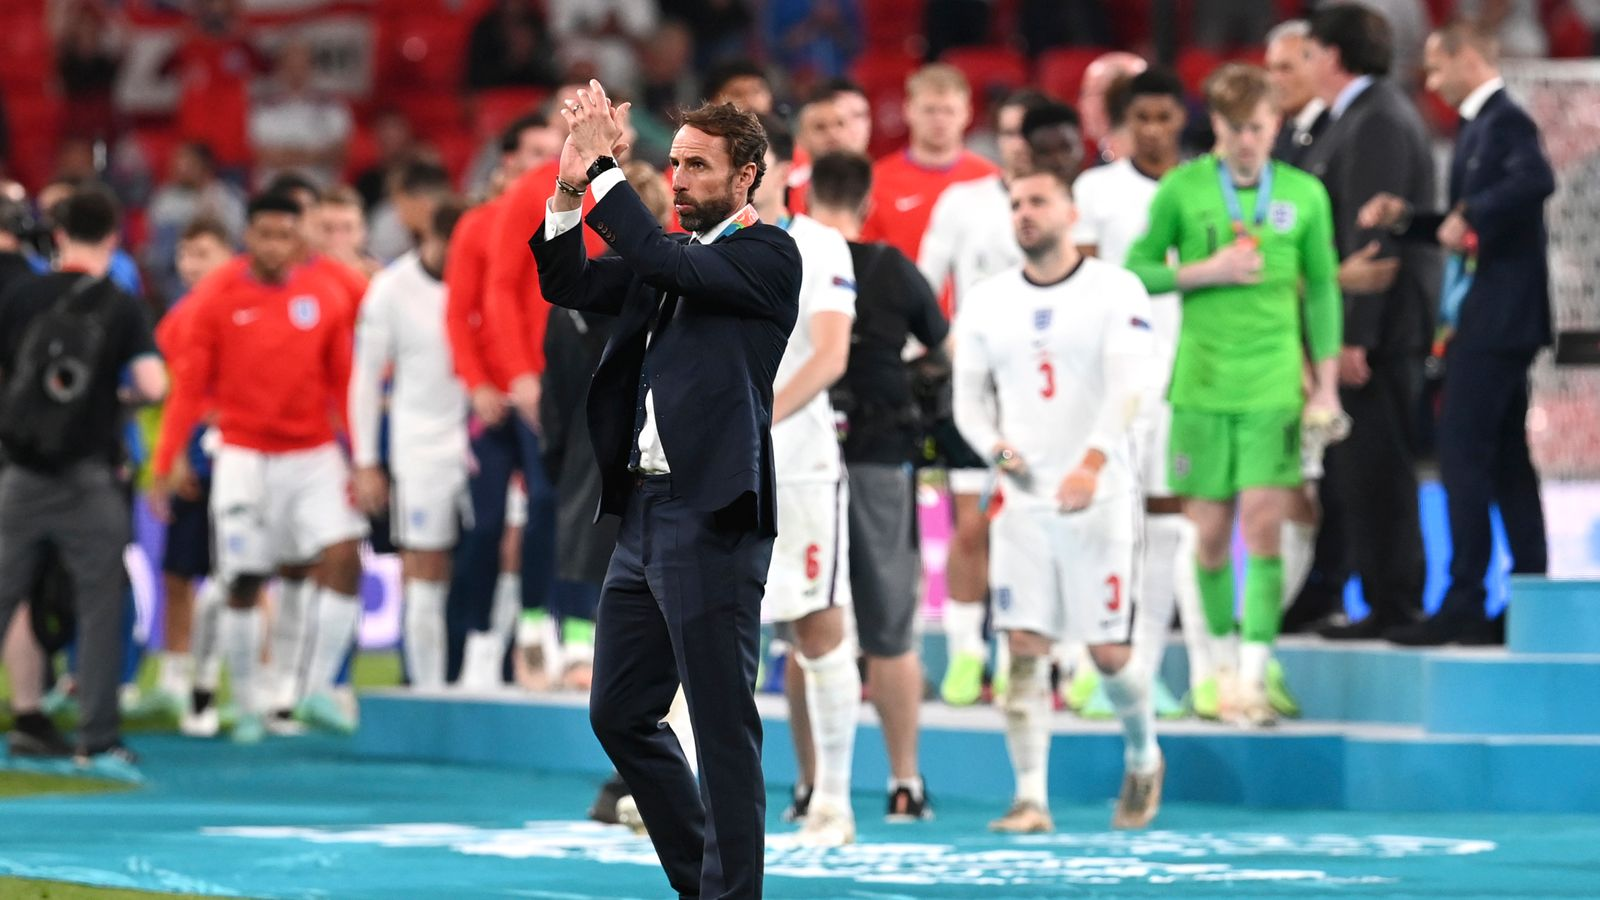 Gareth Southgate clapping the Italians and the fans at end of the Euros on Sunday 11th July https://www.skysports.com/football/news/19693/12353740/euro-2020-final-where-did-it-go-wrong-for-england?utm_source=pocket-newtab-global-en-GB